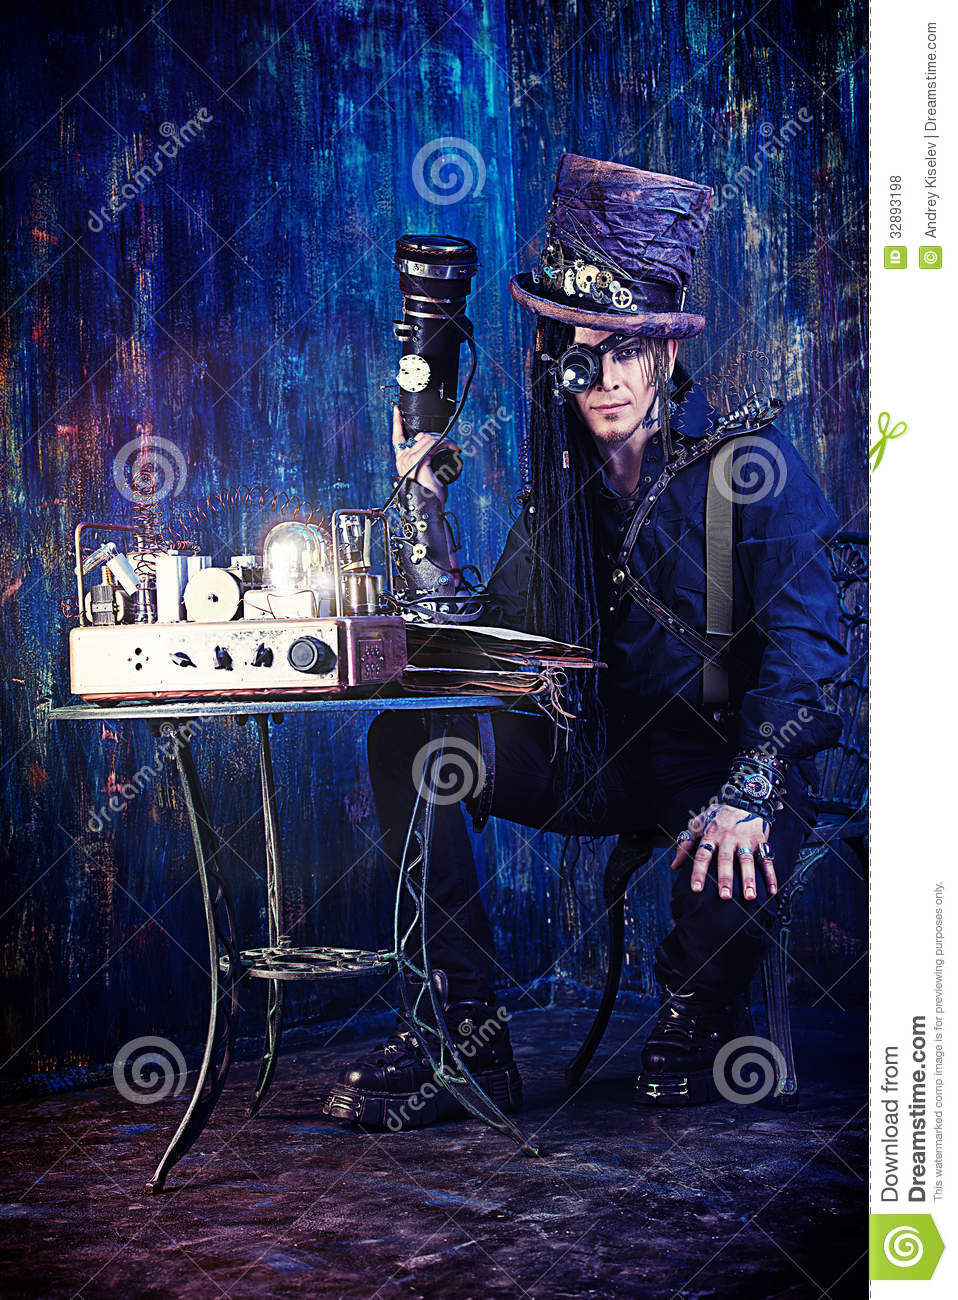 Man Cyberpunk Royalty Free Stock Photos Image 32893198